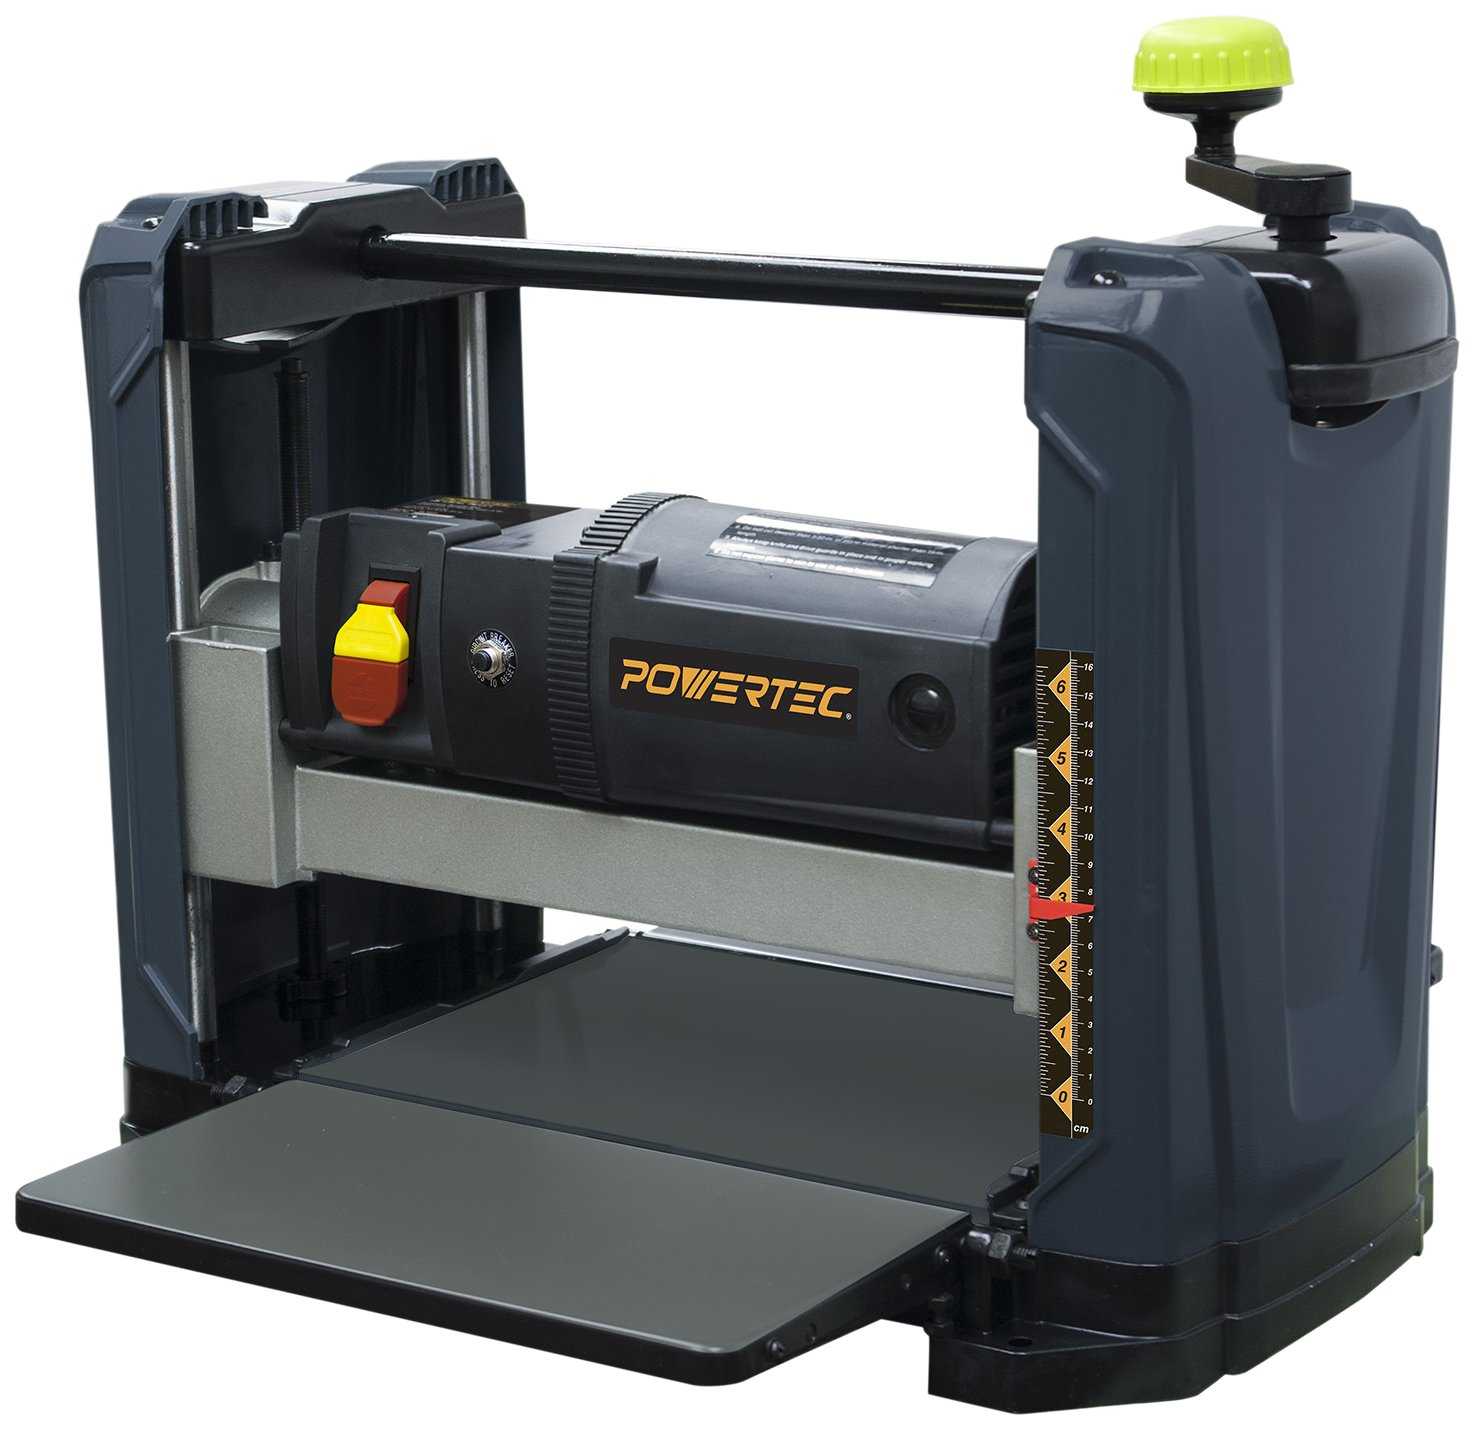 POWERTEC PL1251 Wood Planer Black Friday Deals 2020